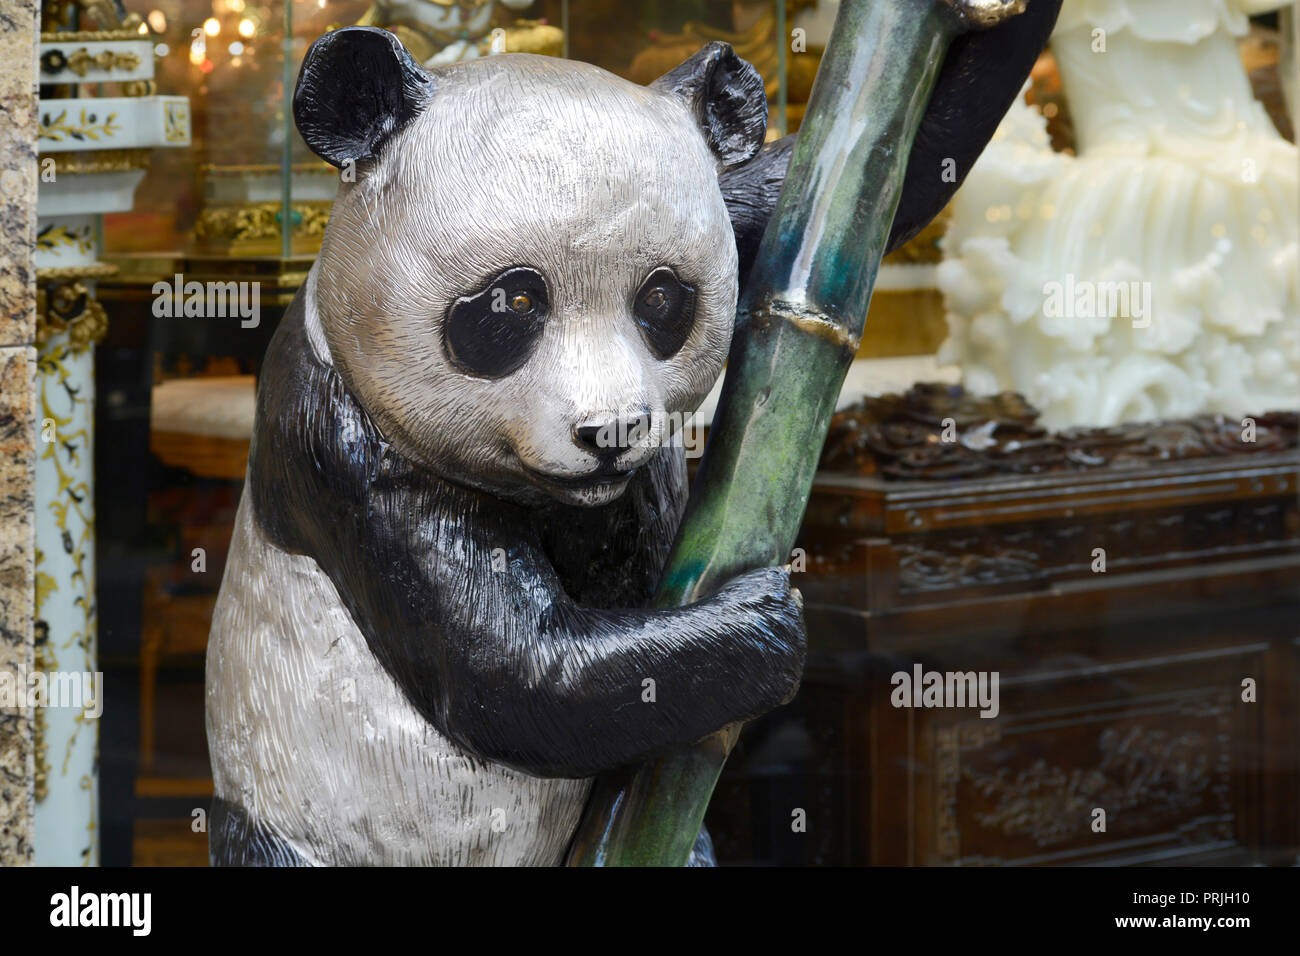 hight resolution of a bronze panda bear sculpture for sale in a home decor shop in chinatown san